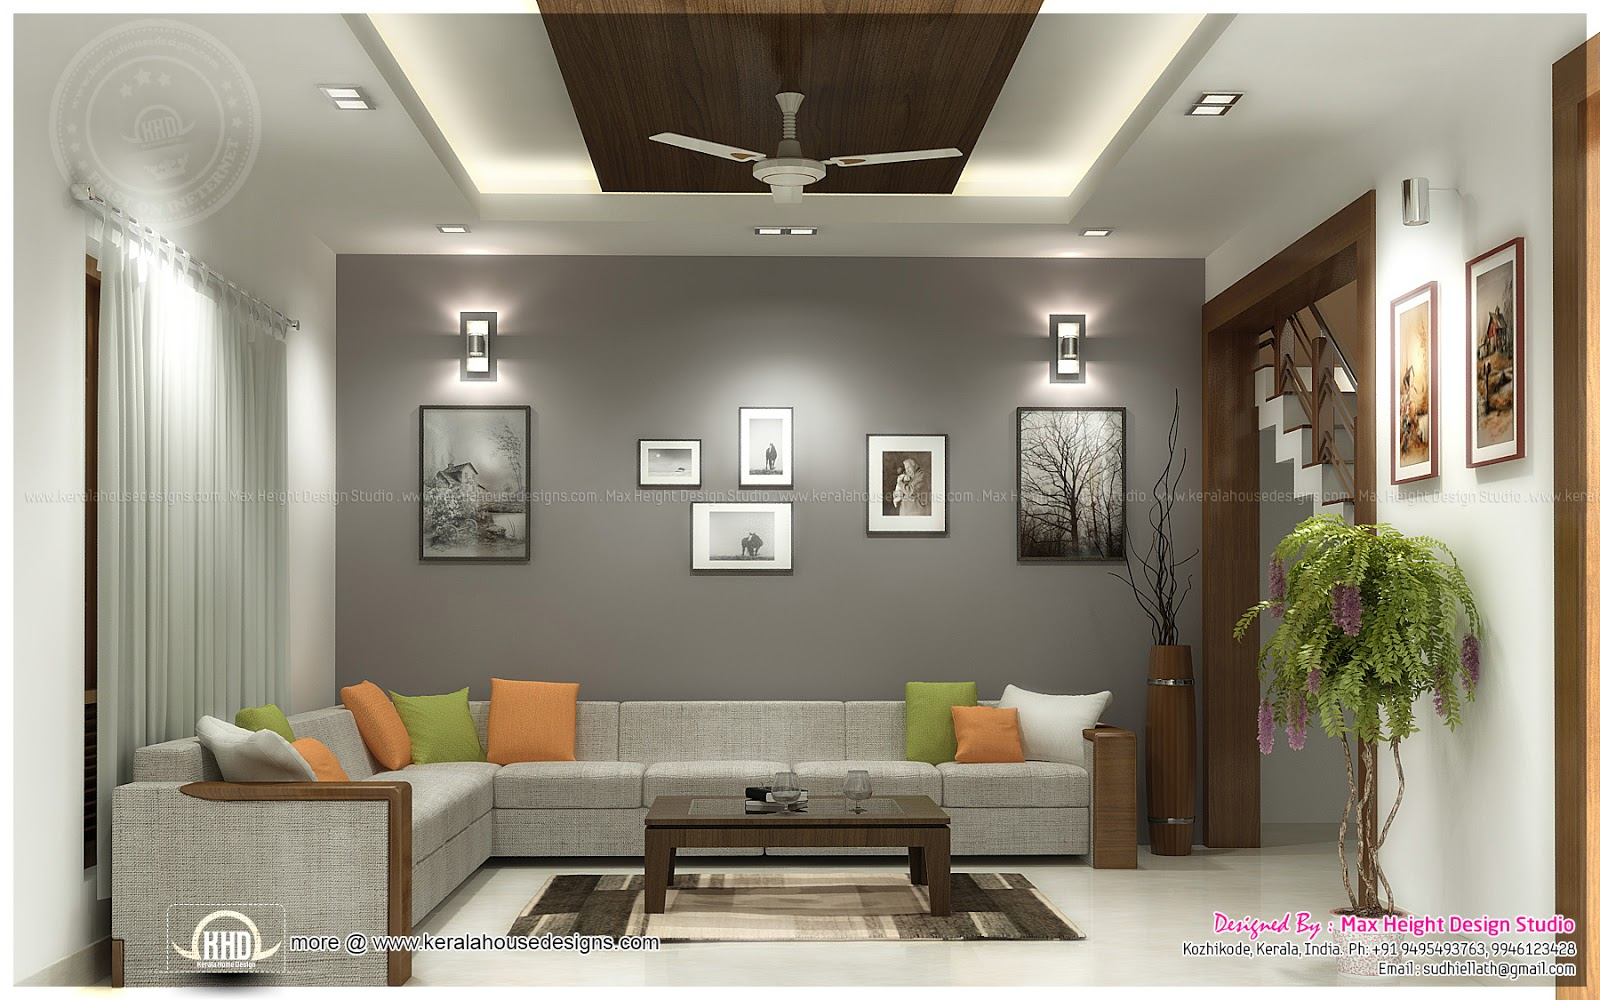 Beautiful interior ideas for home kerala home design and - Home interior designs ...